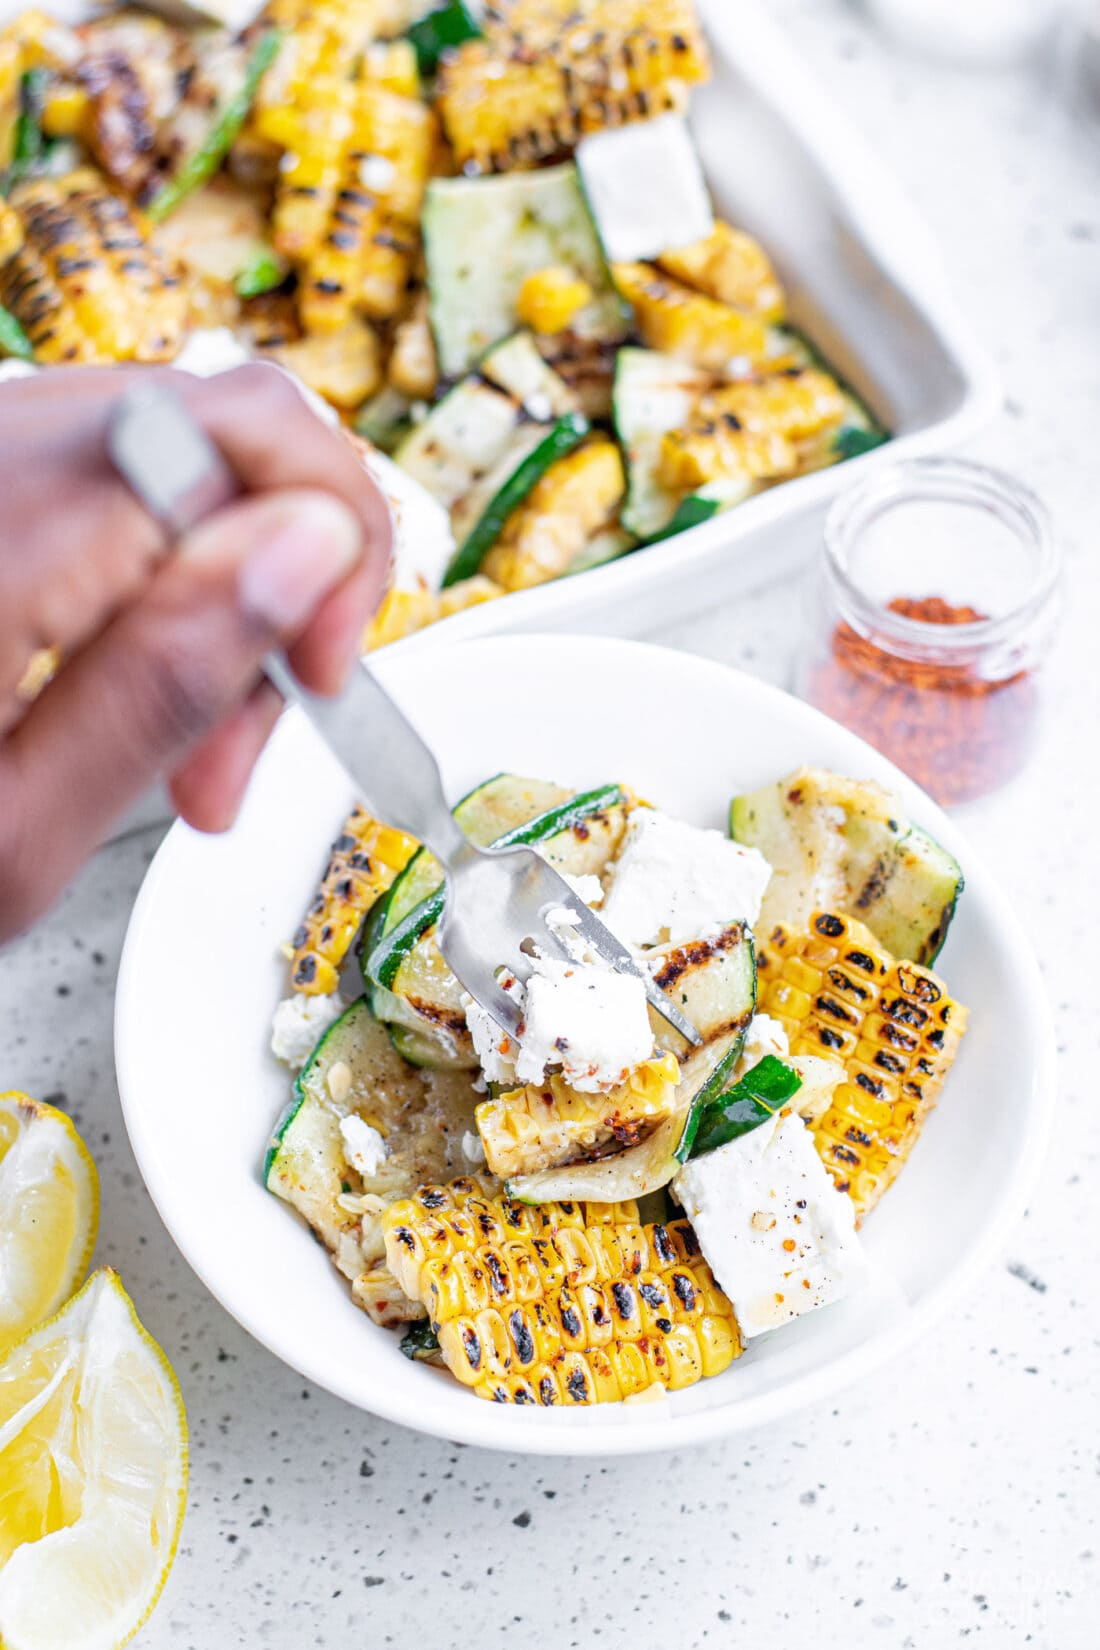 grabbing some Grilled Corn & Zucchini Salad with Feta with a fork